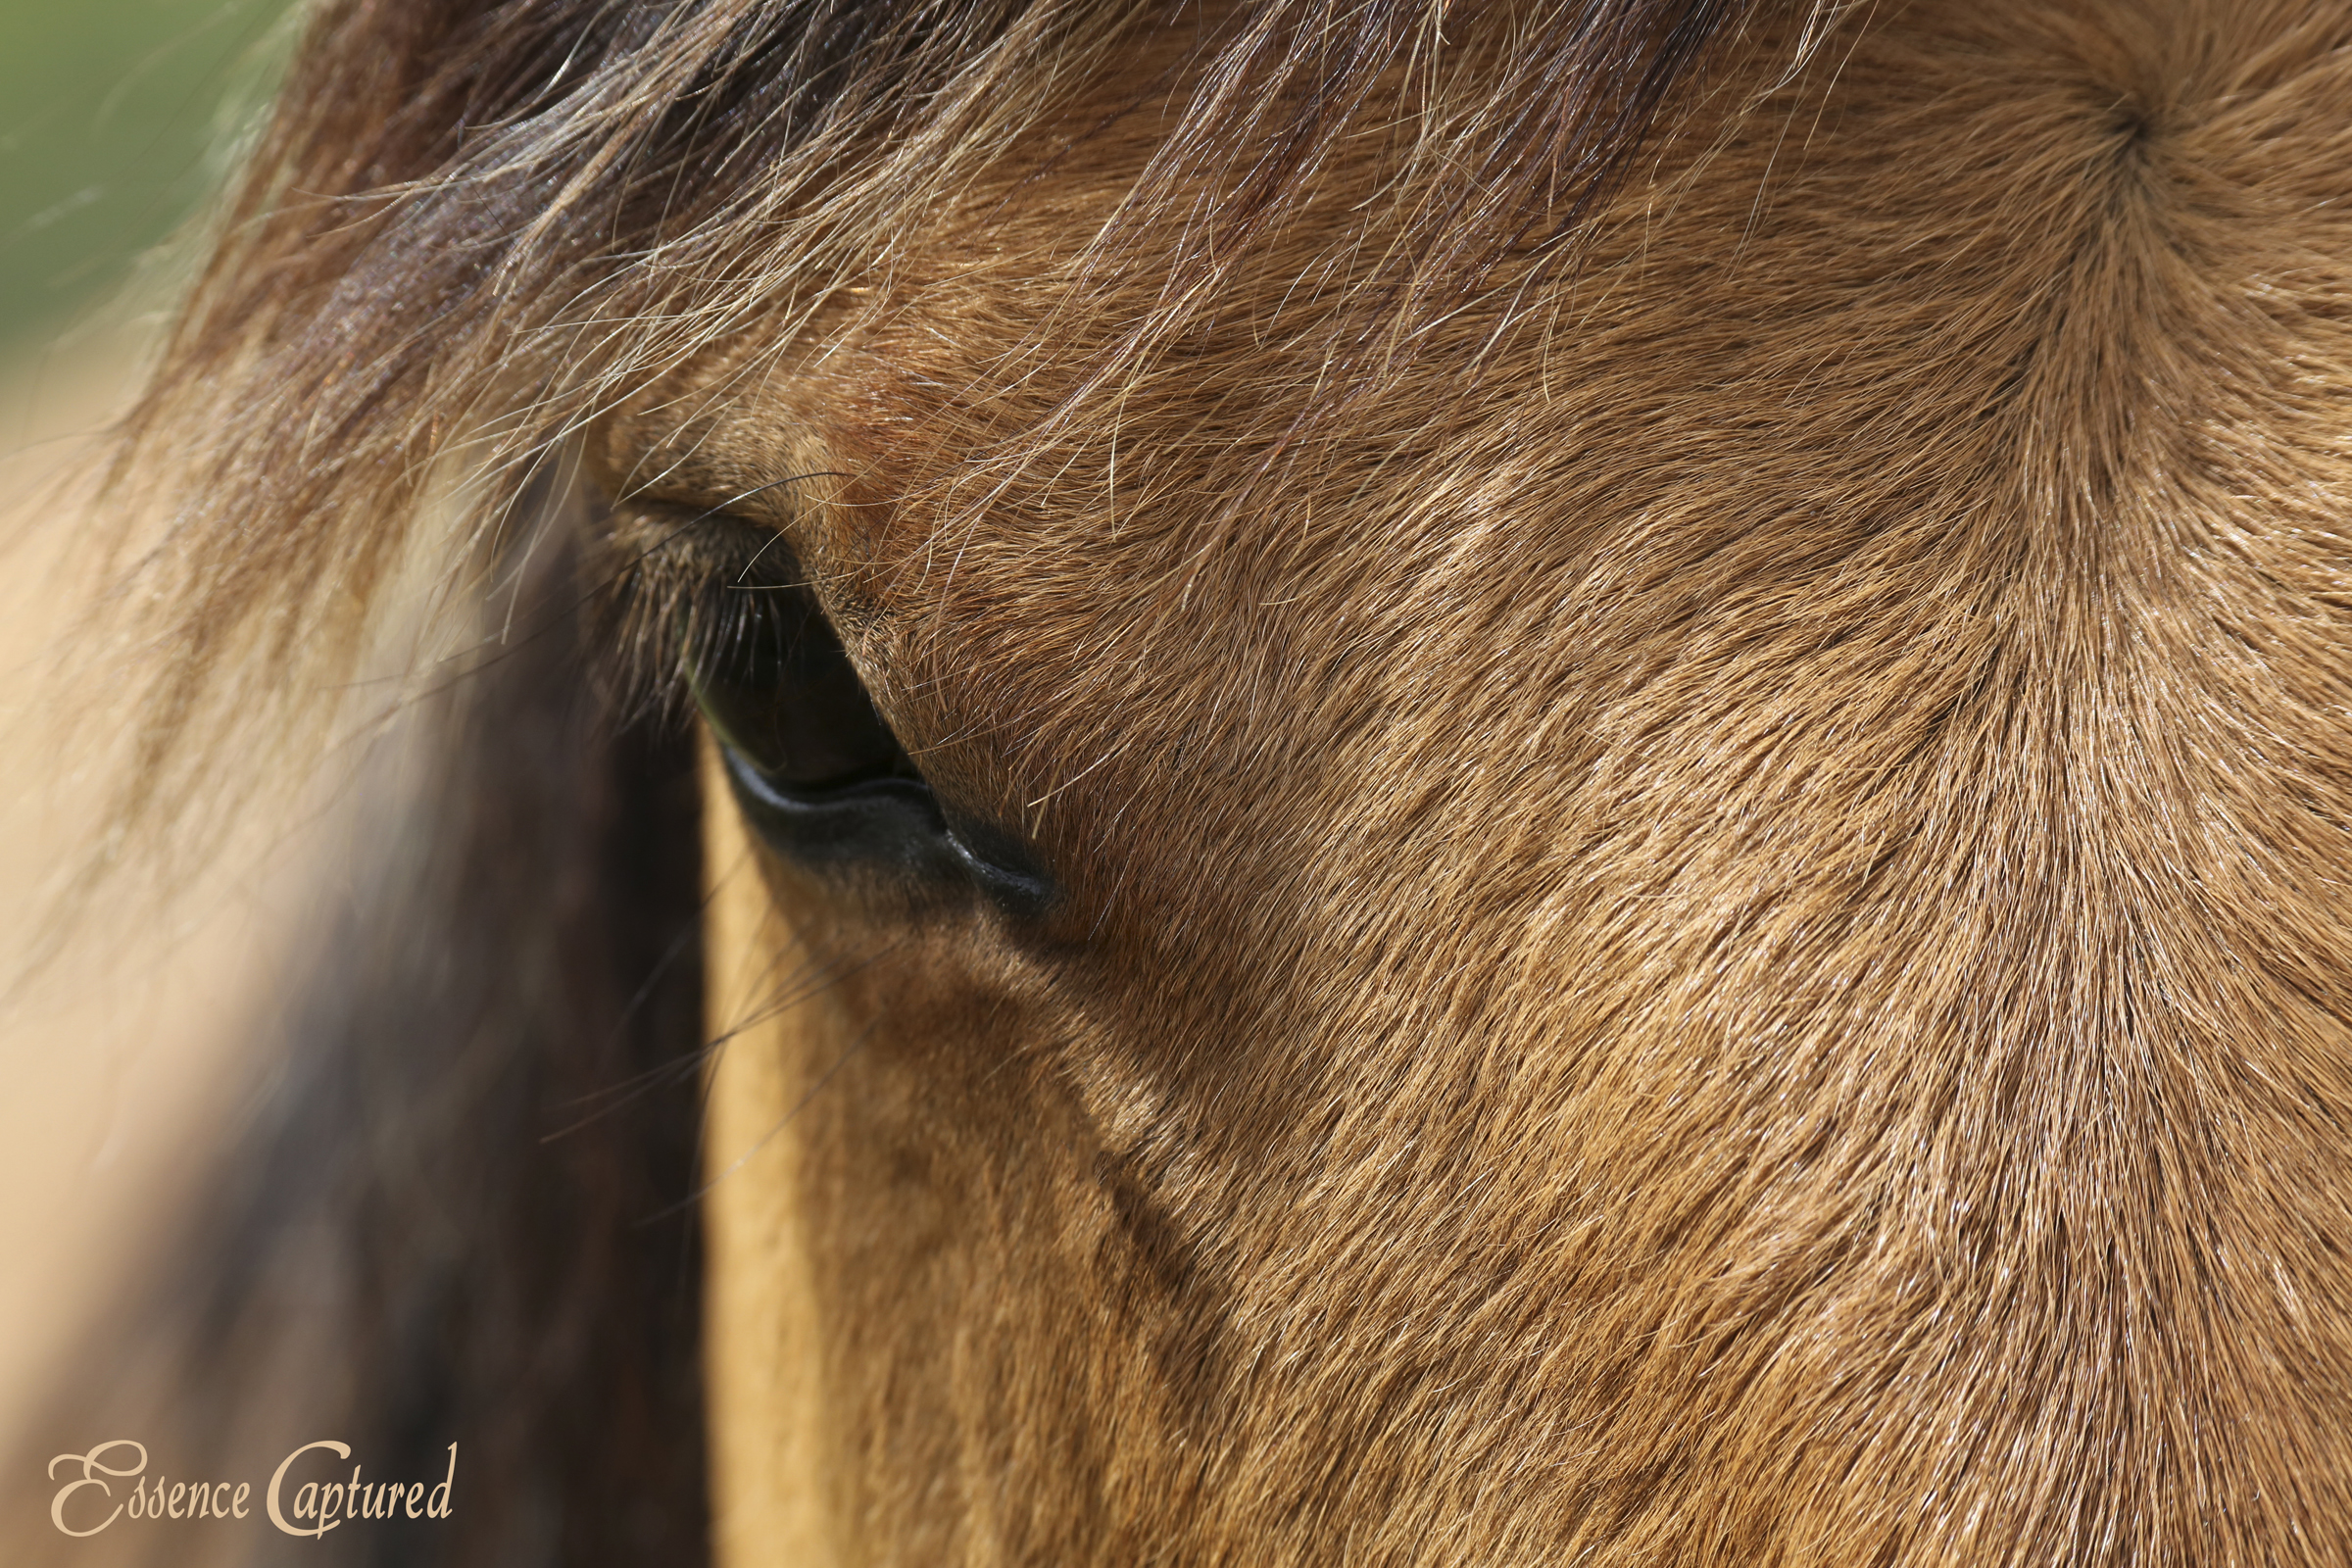 close up of horses eye